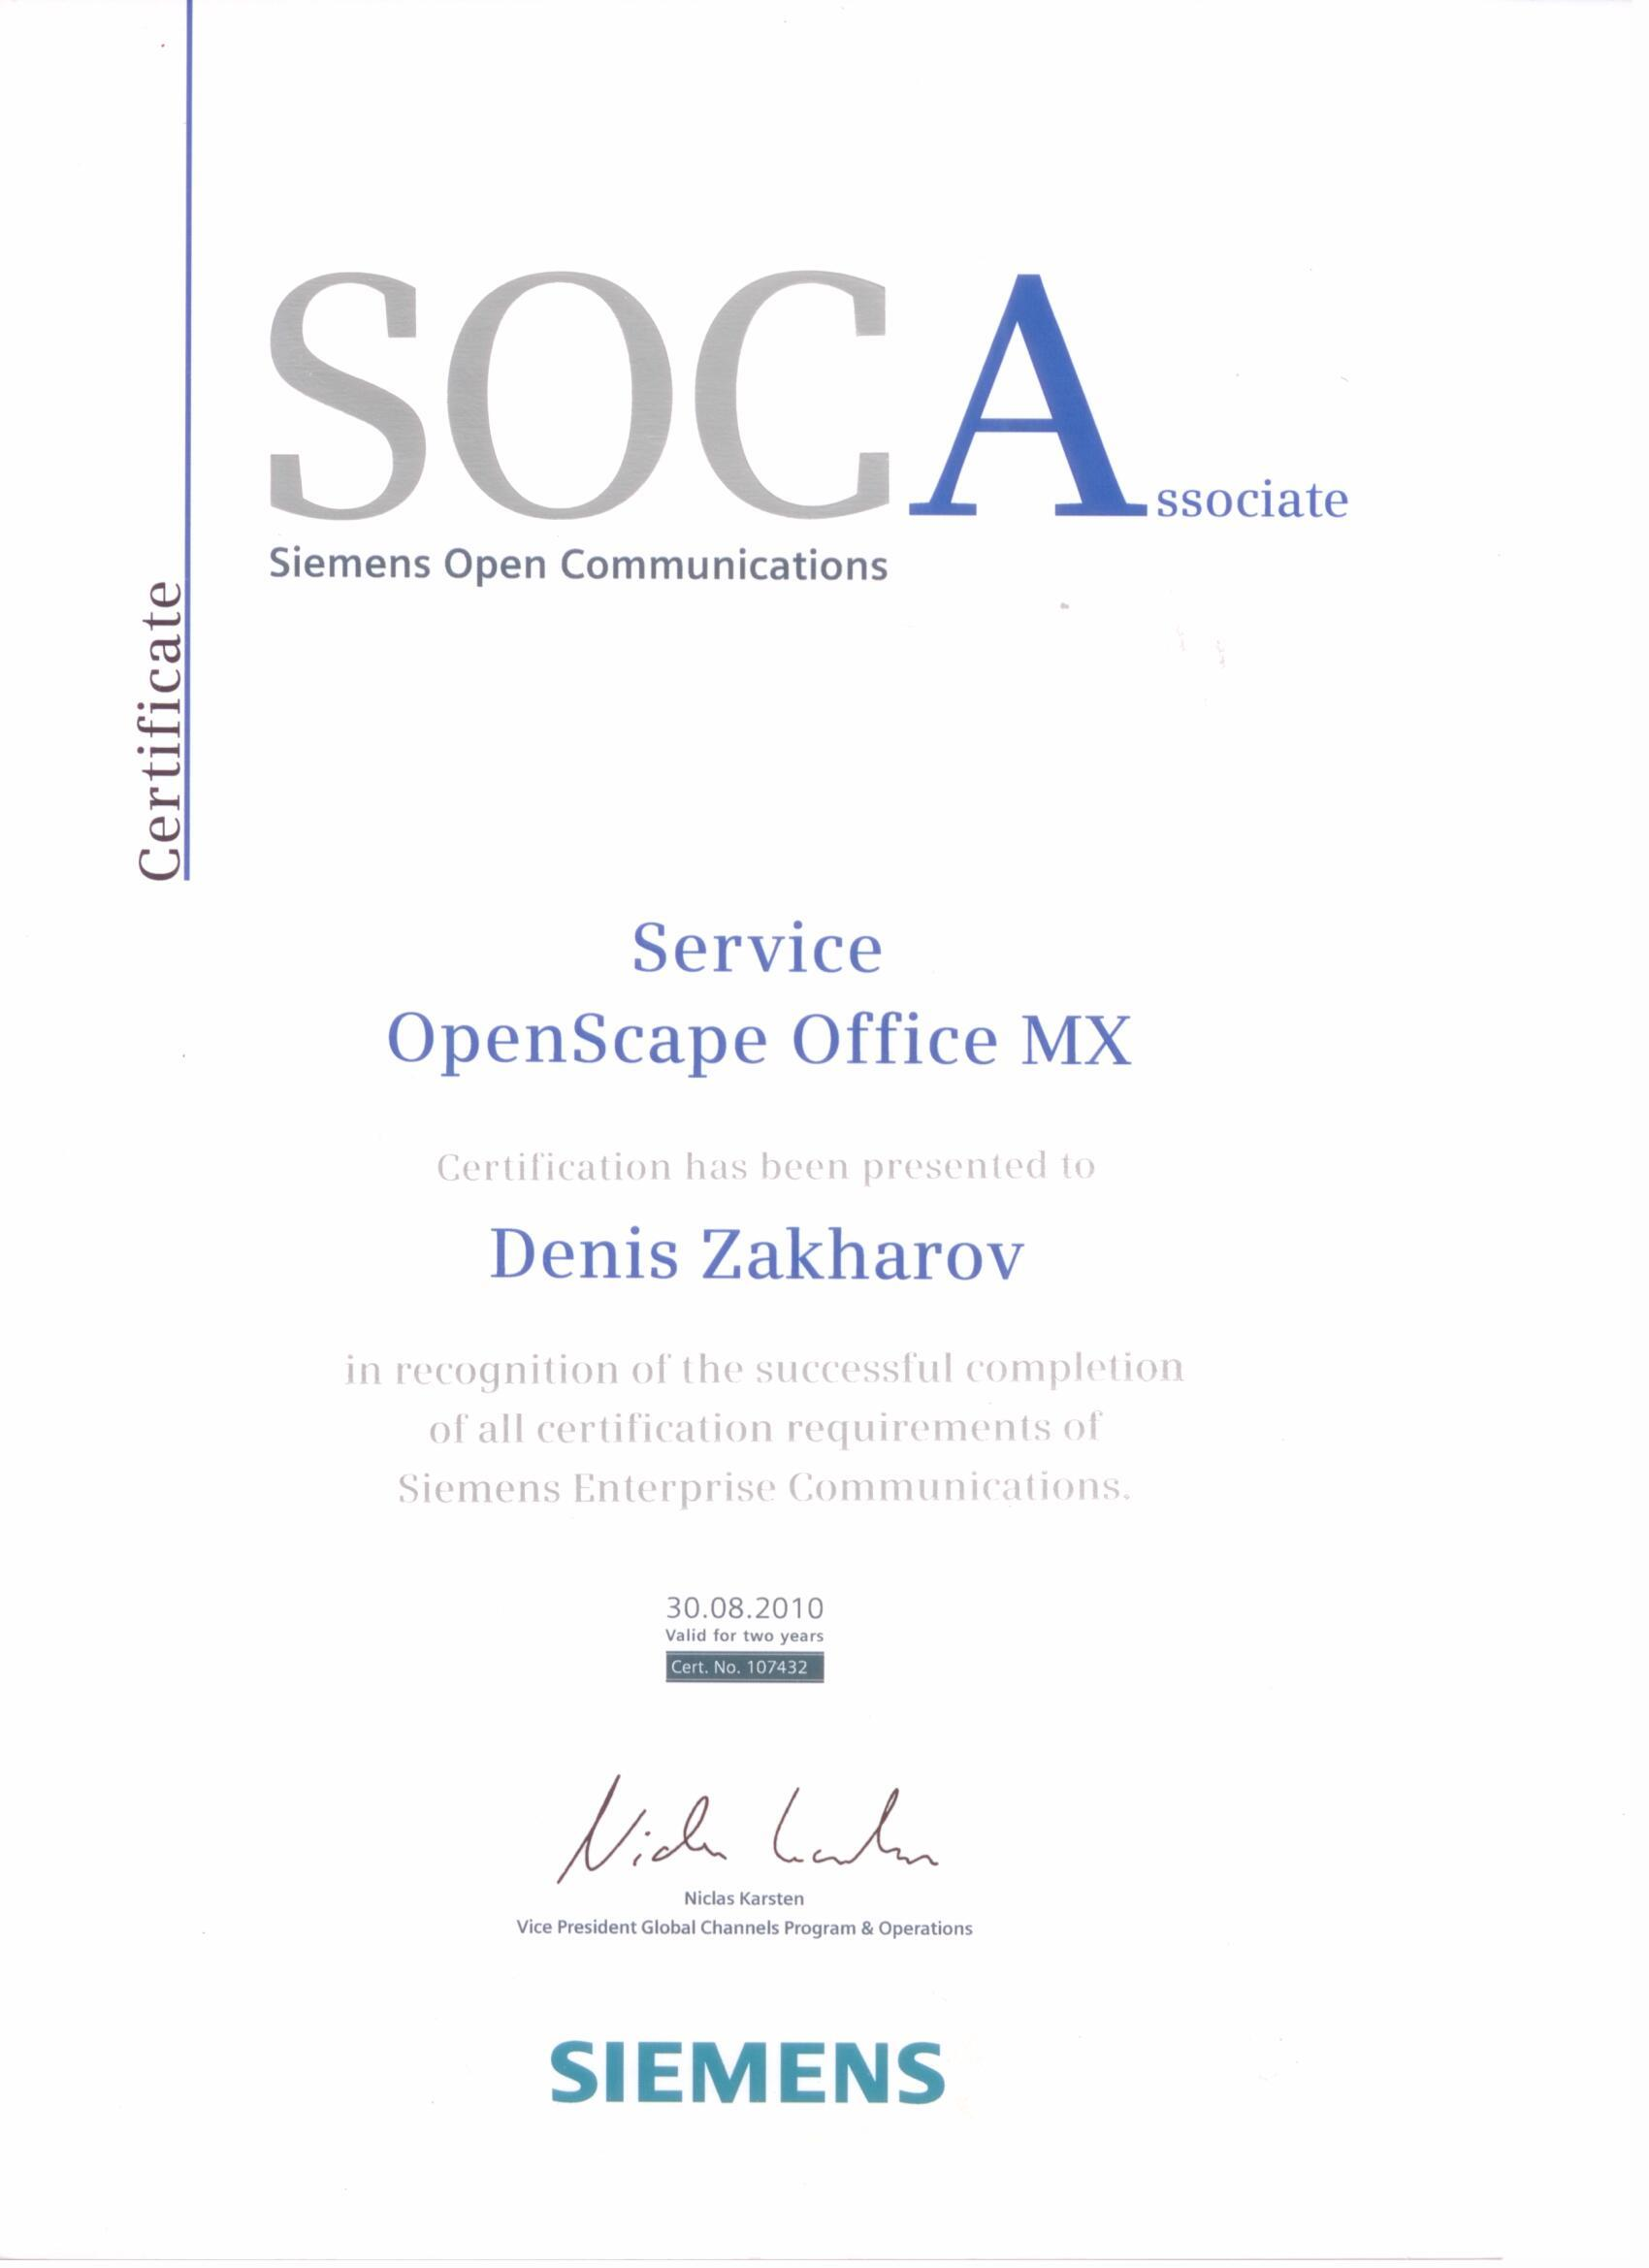 OpenScape Office MX